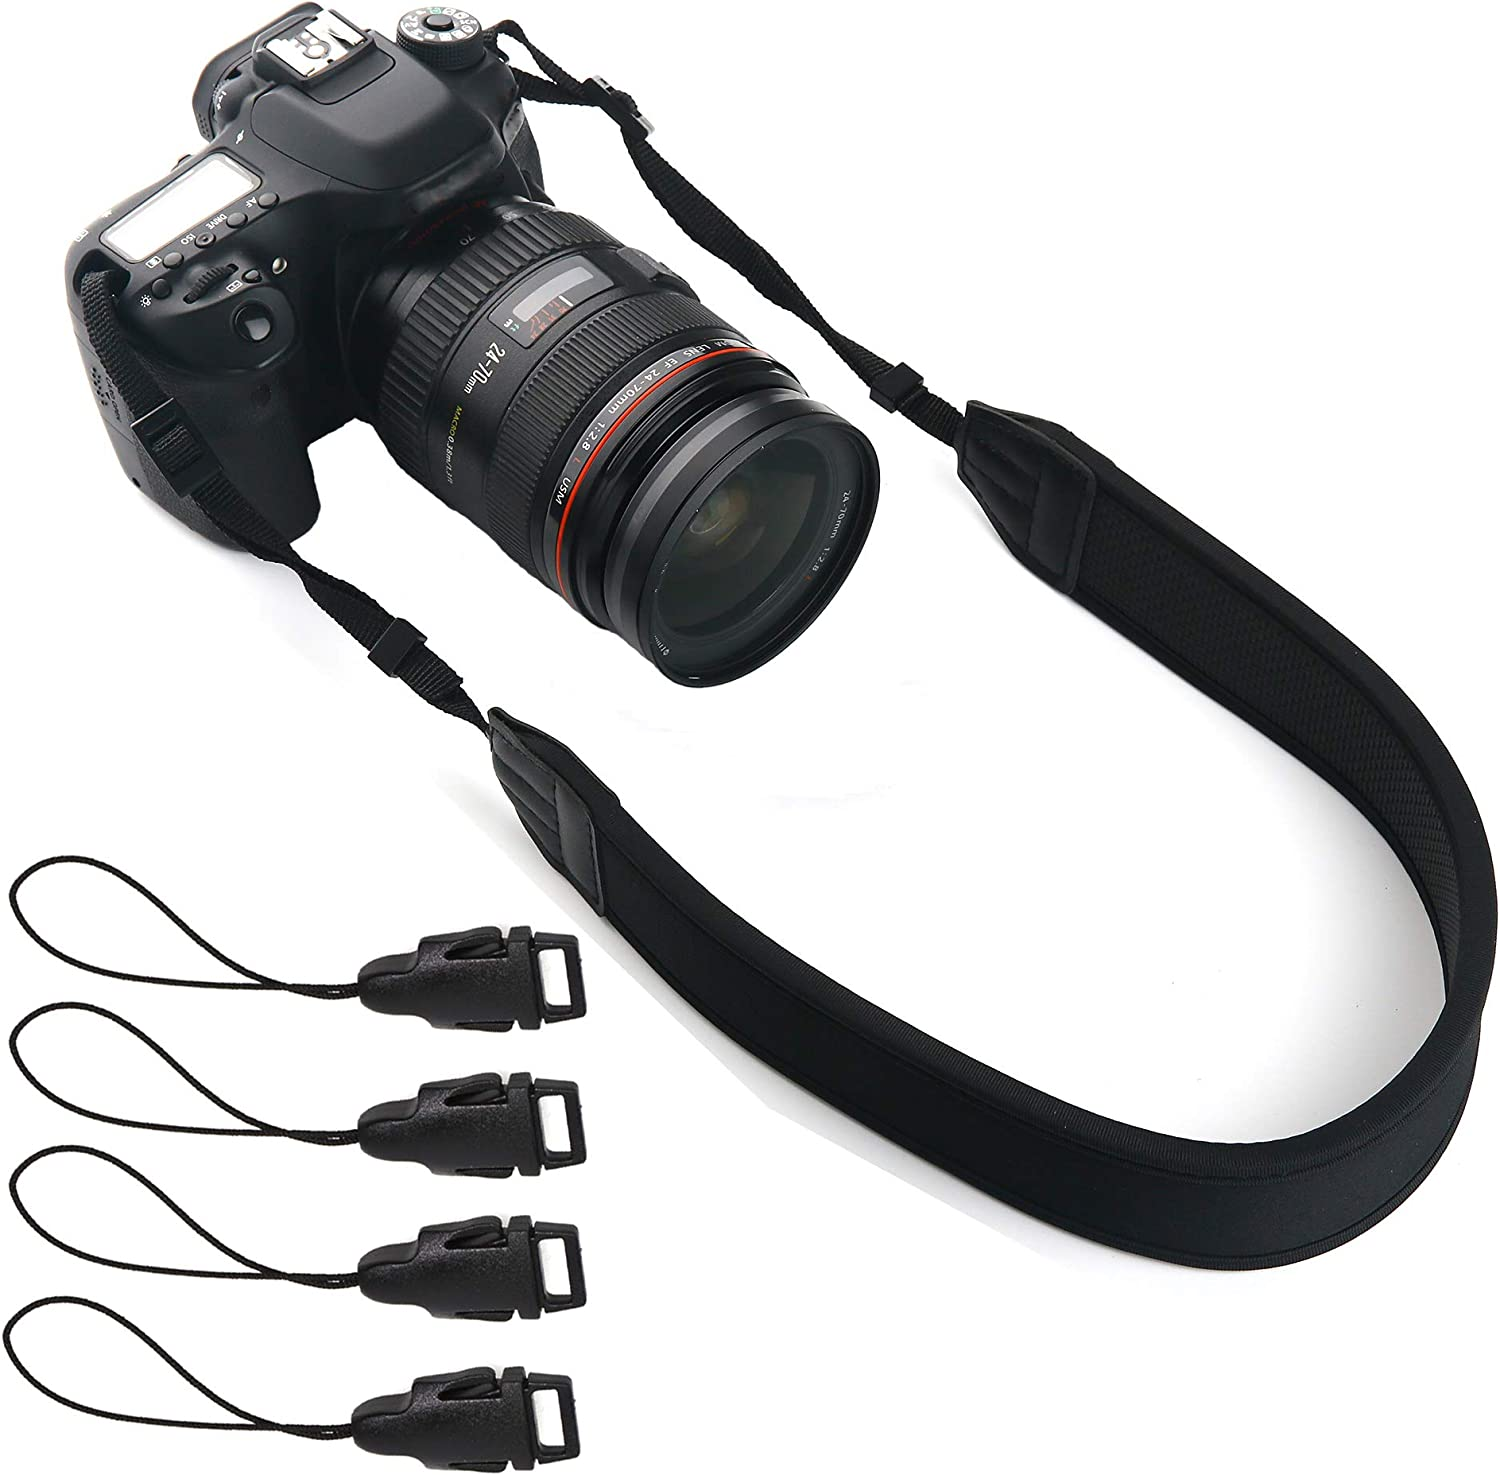 Neck Strap Lanyard Style Adjustable with Quick-Release for Sony Handycam DCR-SR87